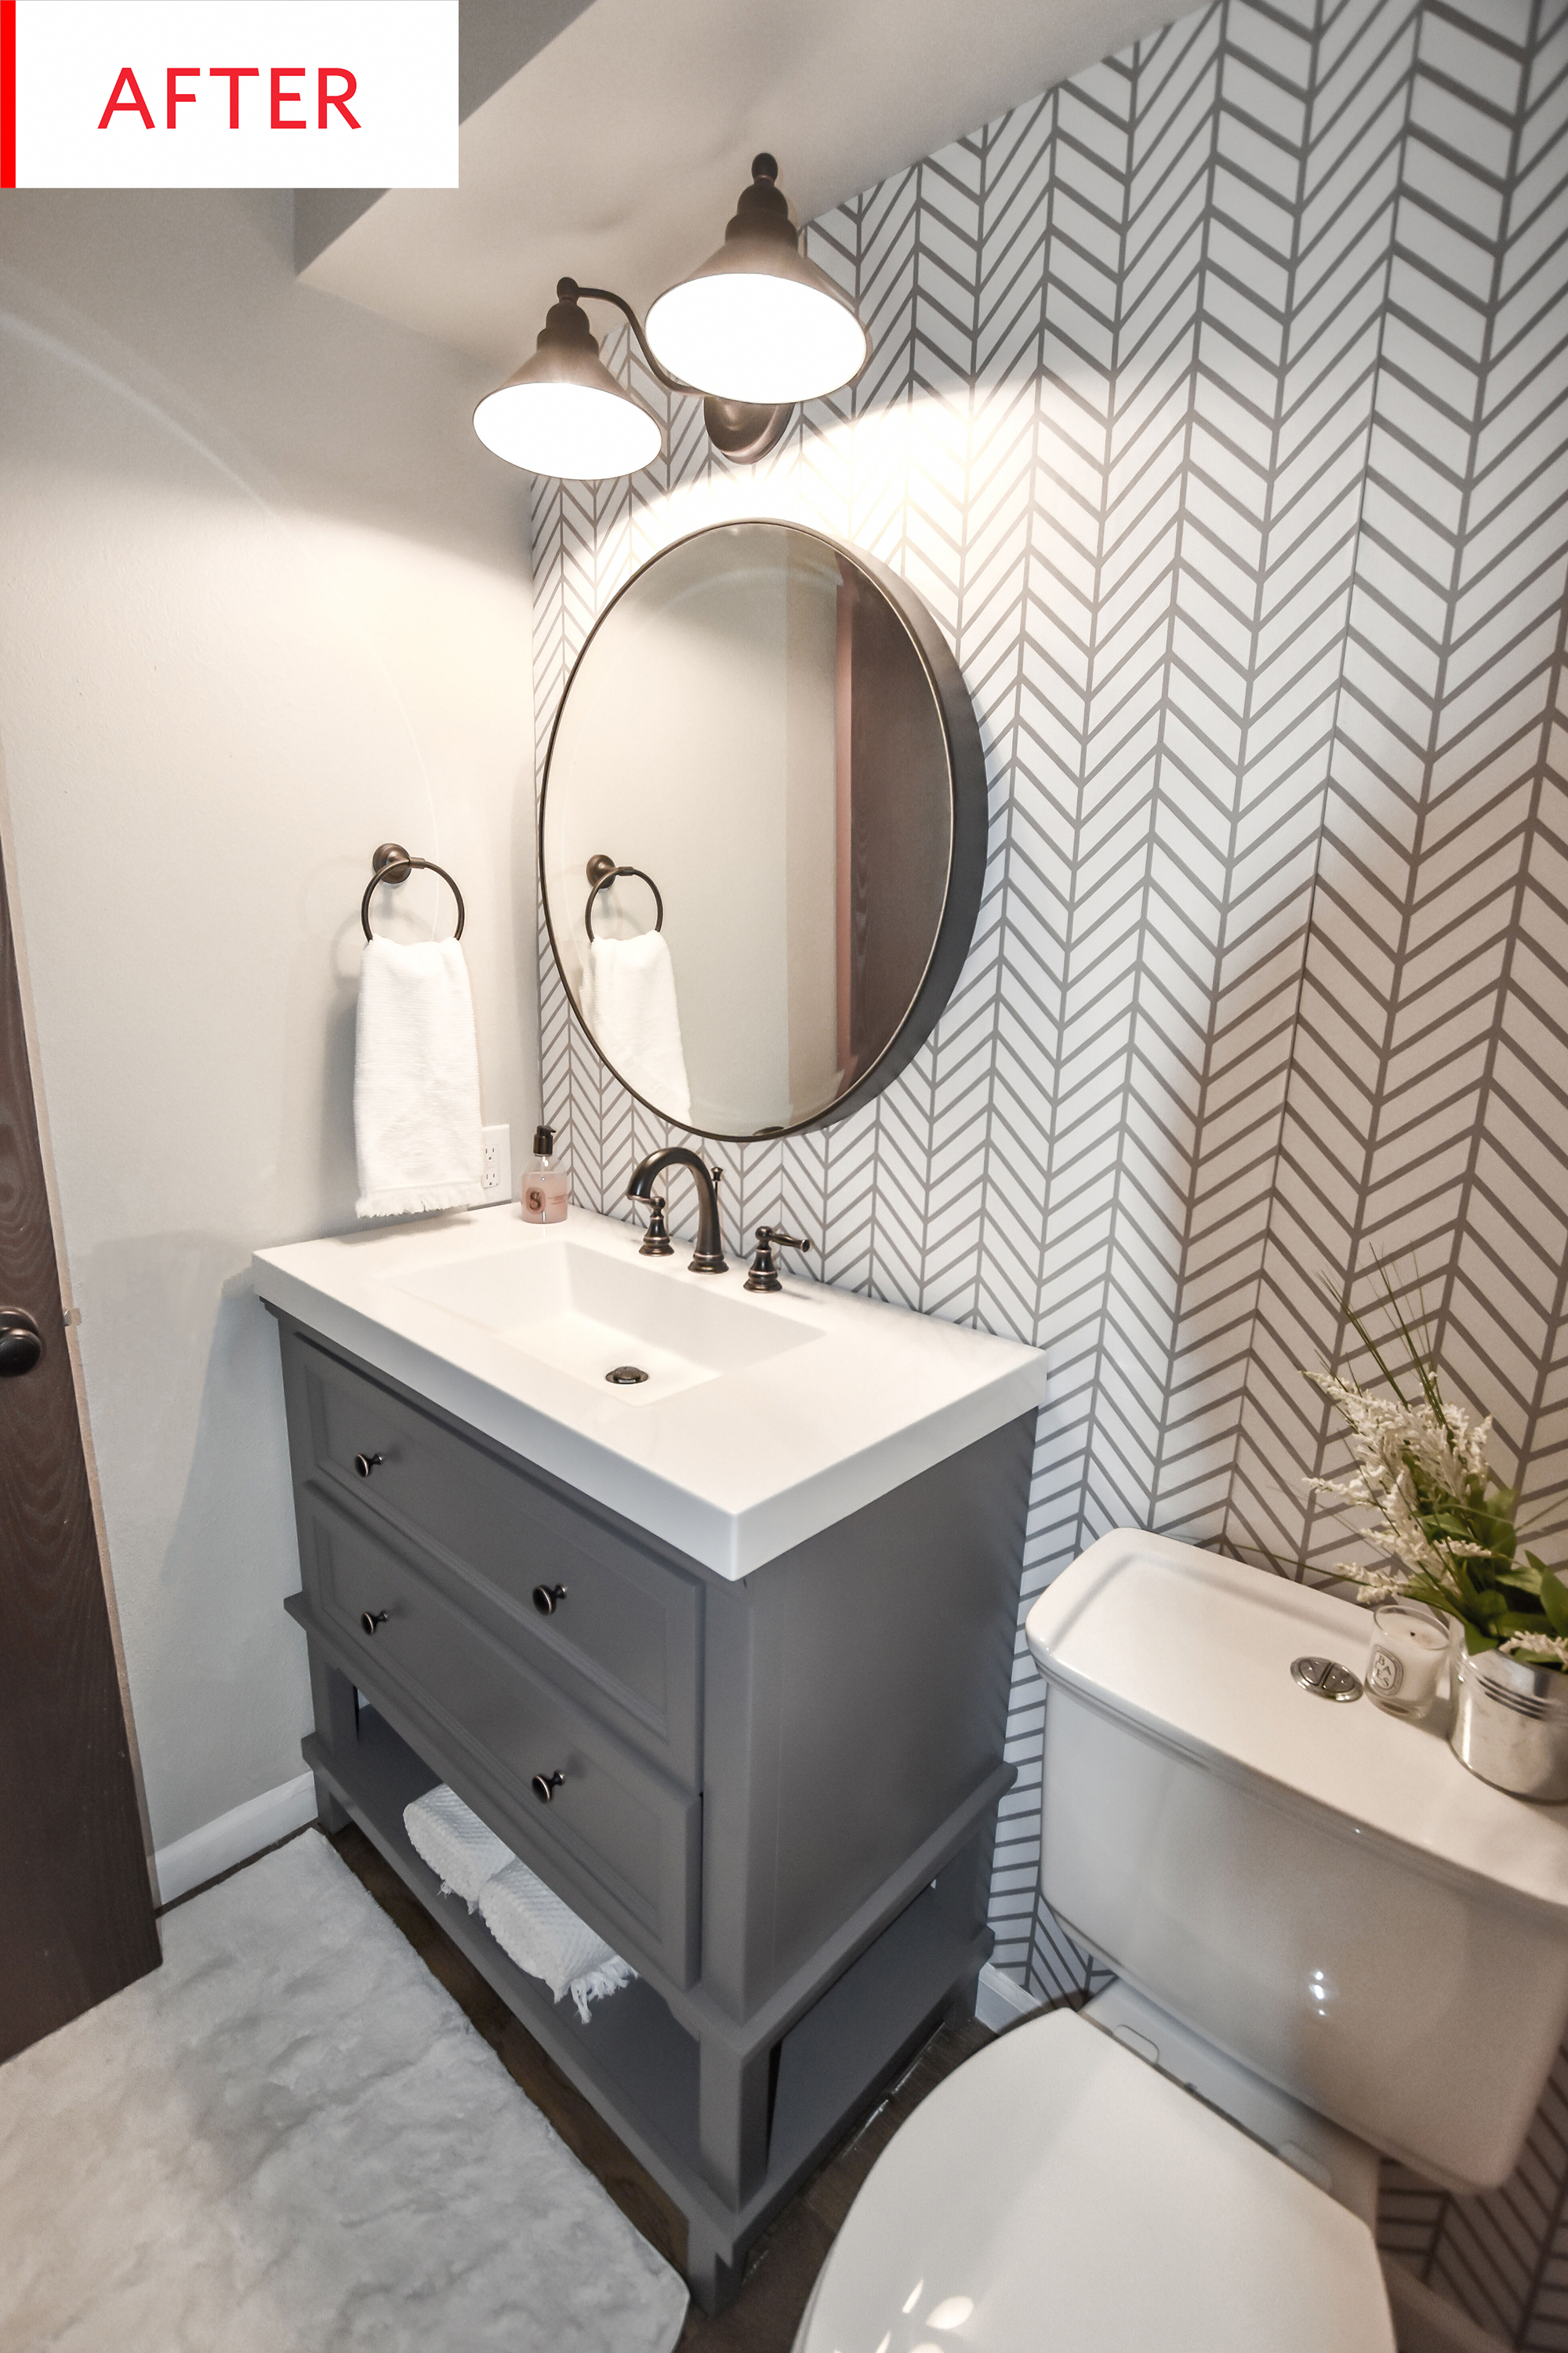 Before And After: An Amazing New Bathroom For Only $1,000